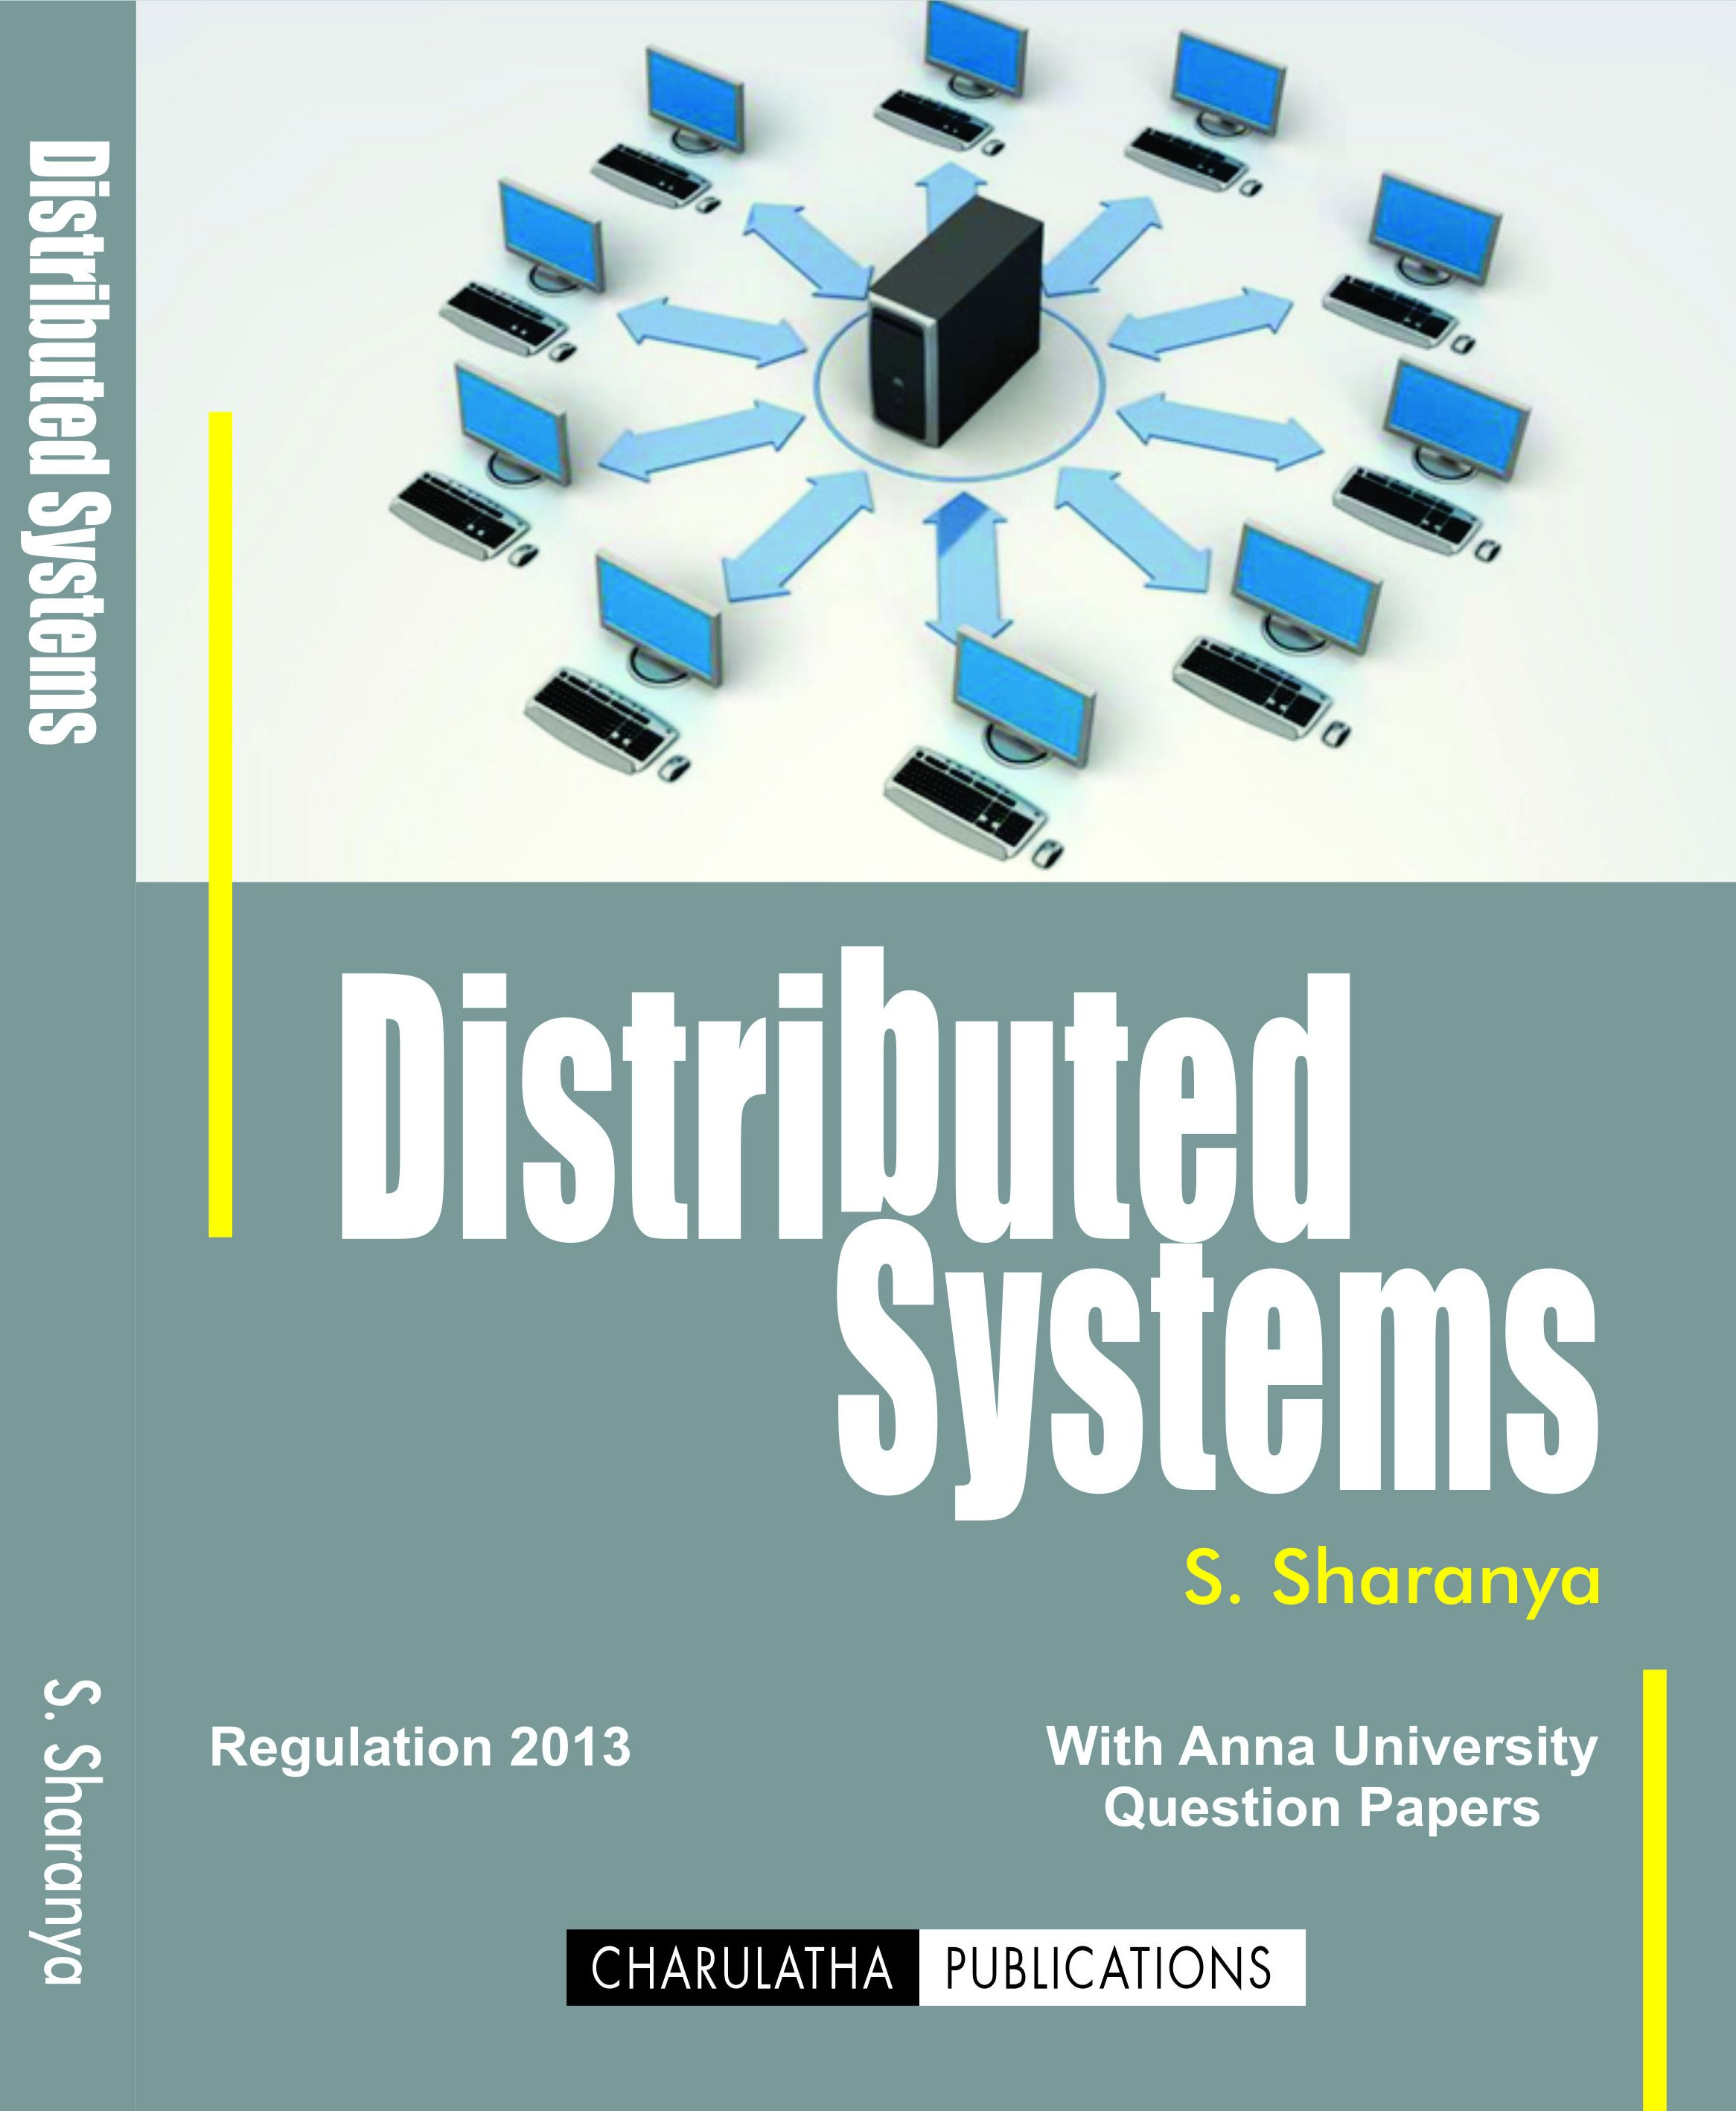 PDF] CS6601 Distributed Systems Lecture Notes, Books